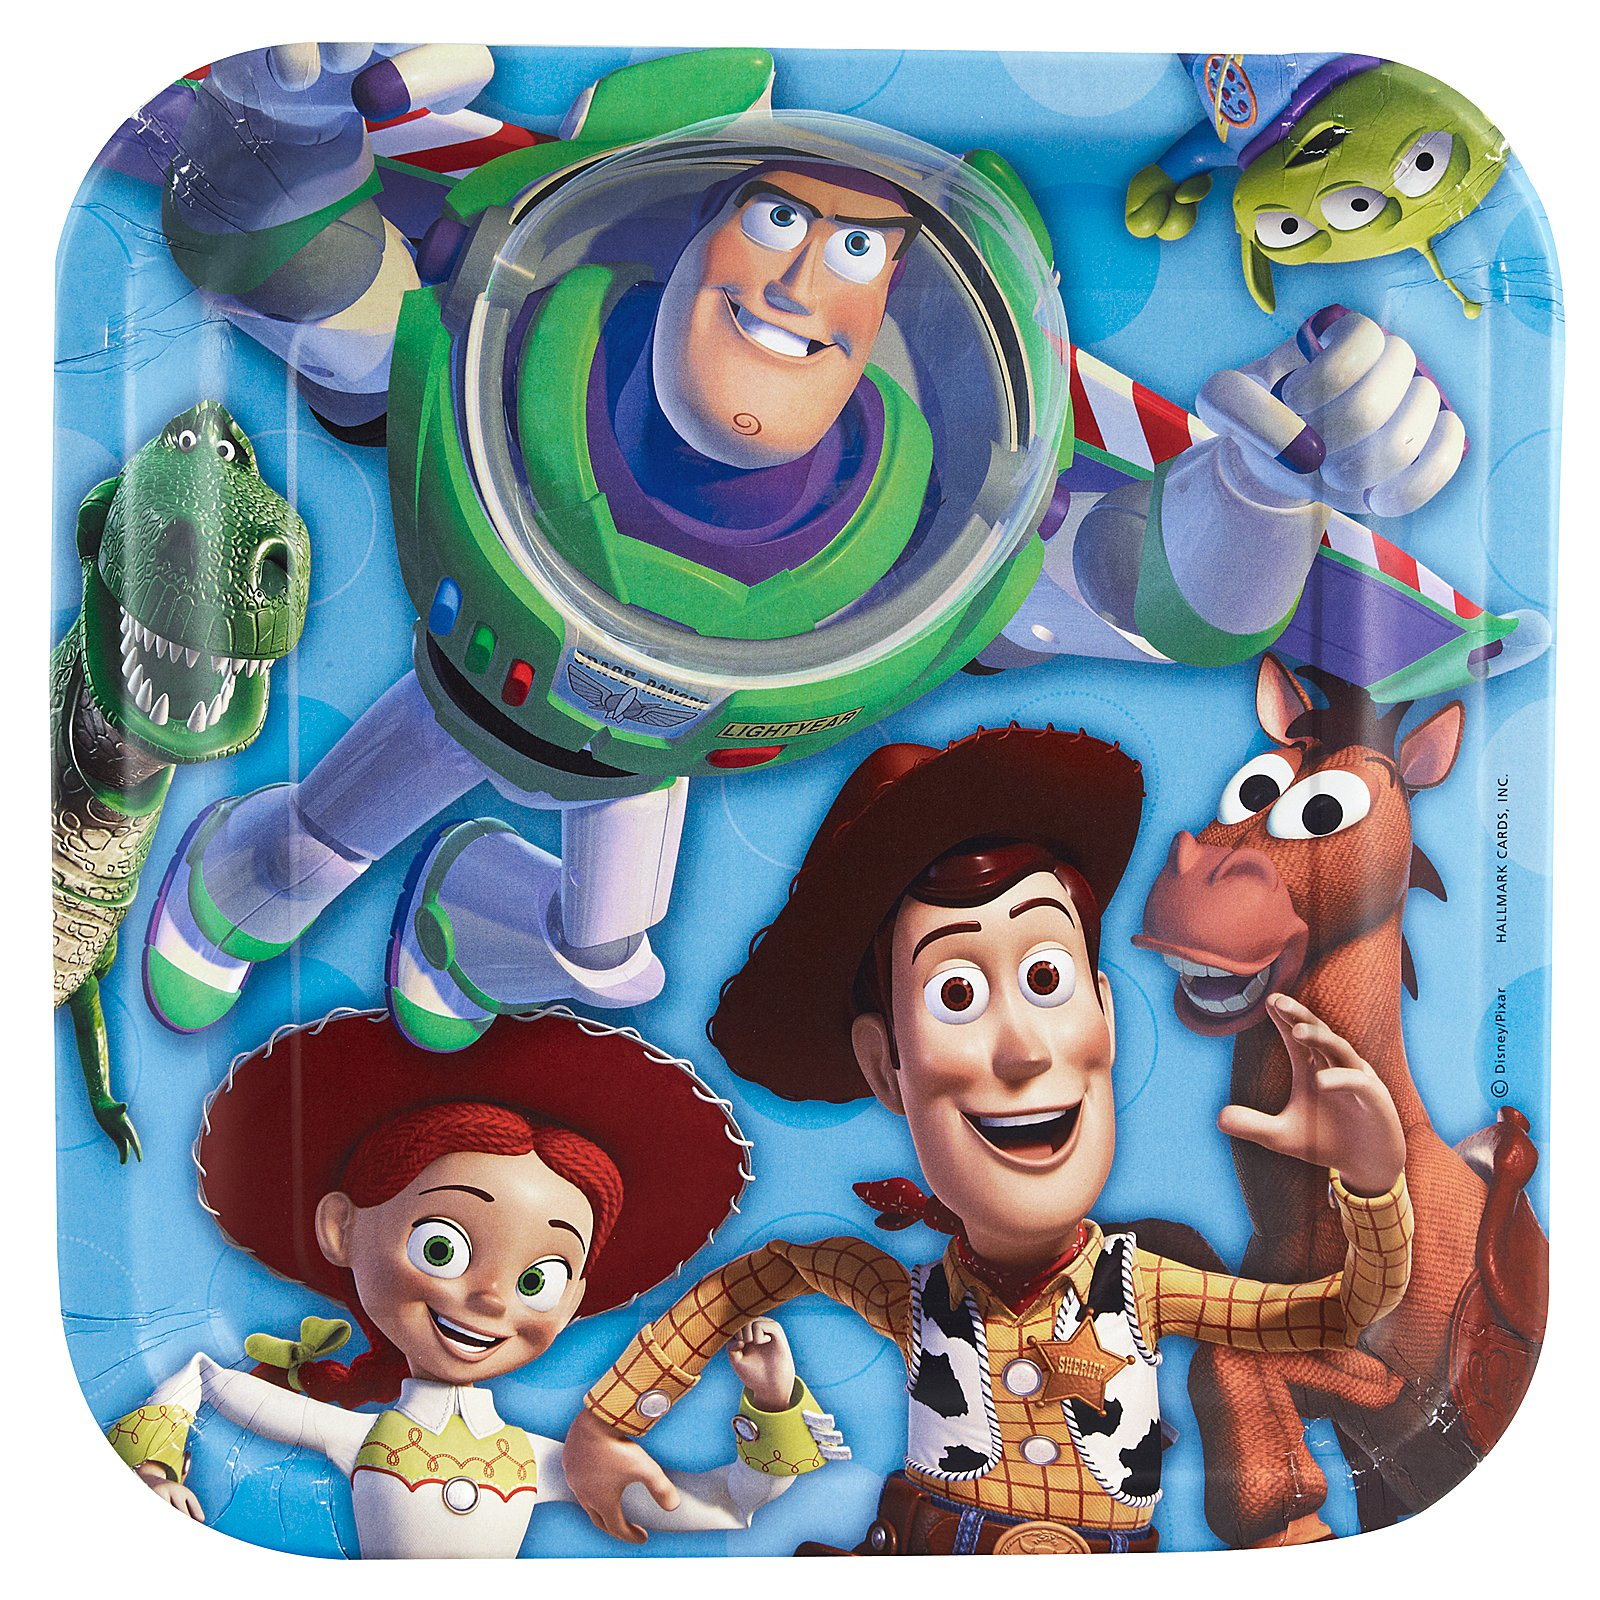 Toy Story 3 - 3D Square Dinner Plates (8 count)